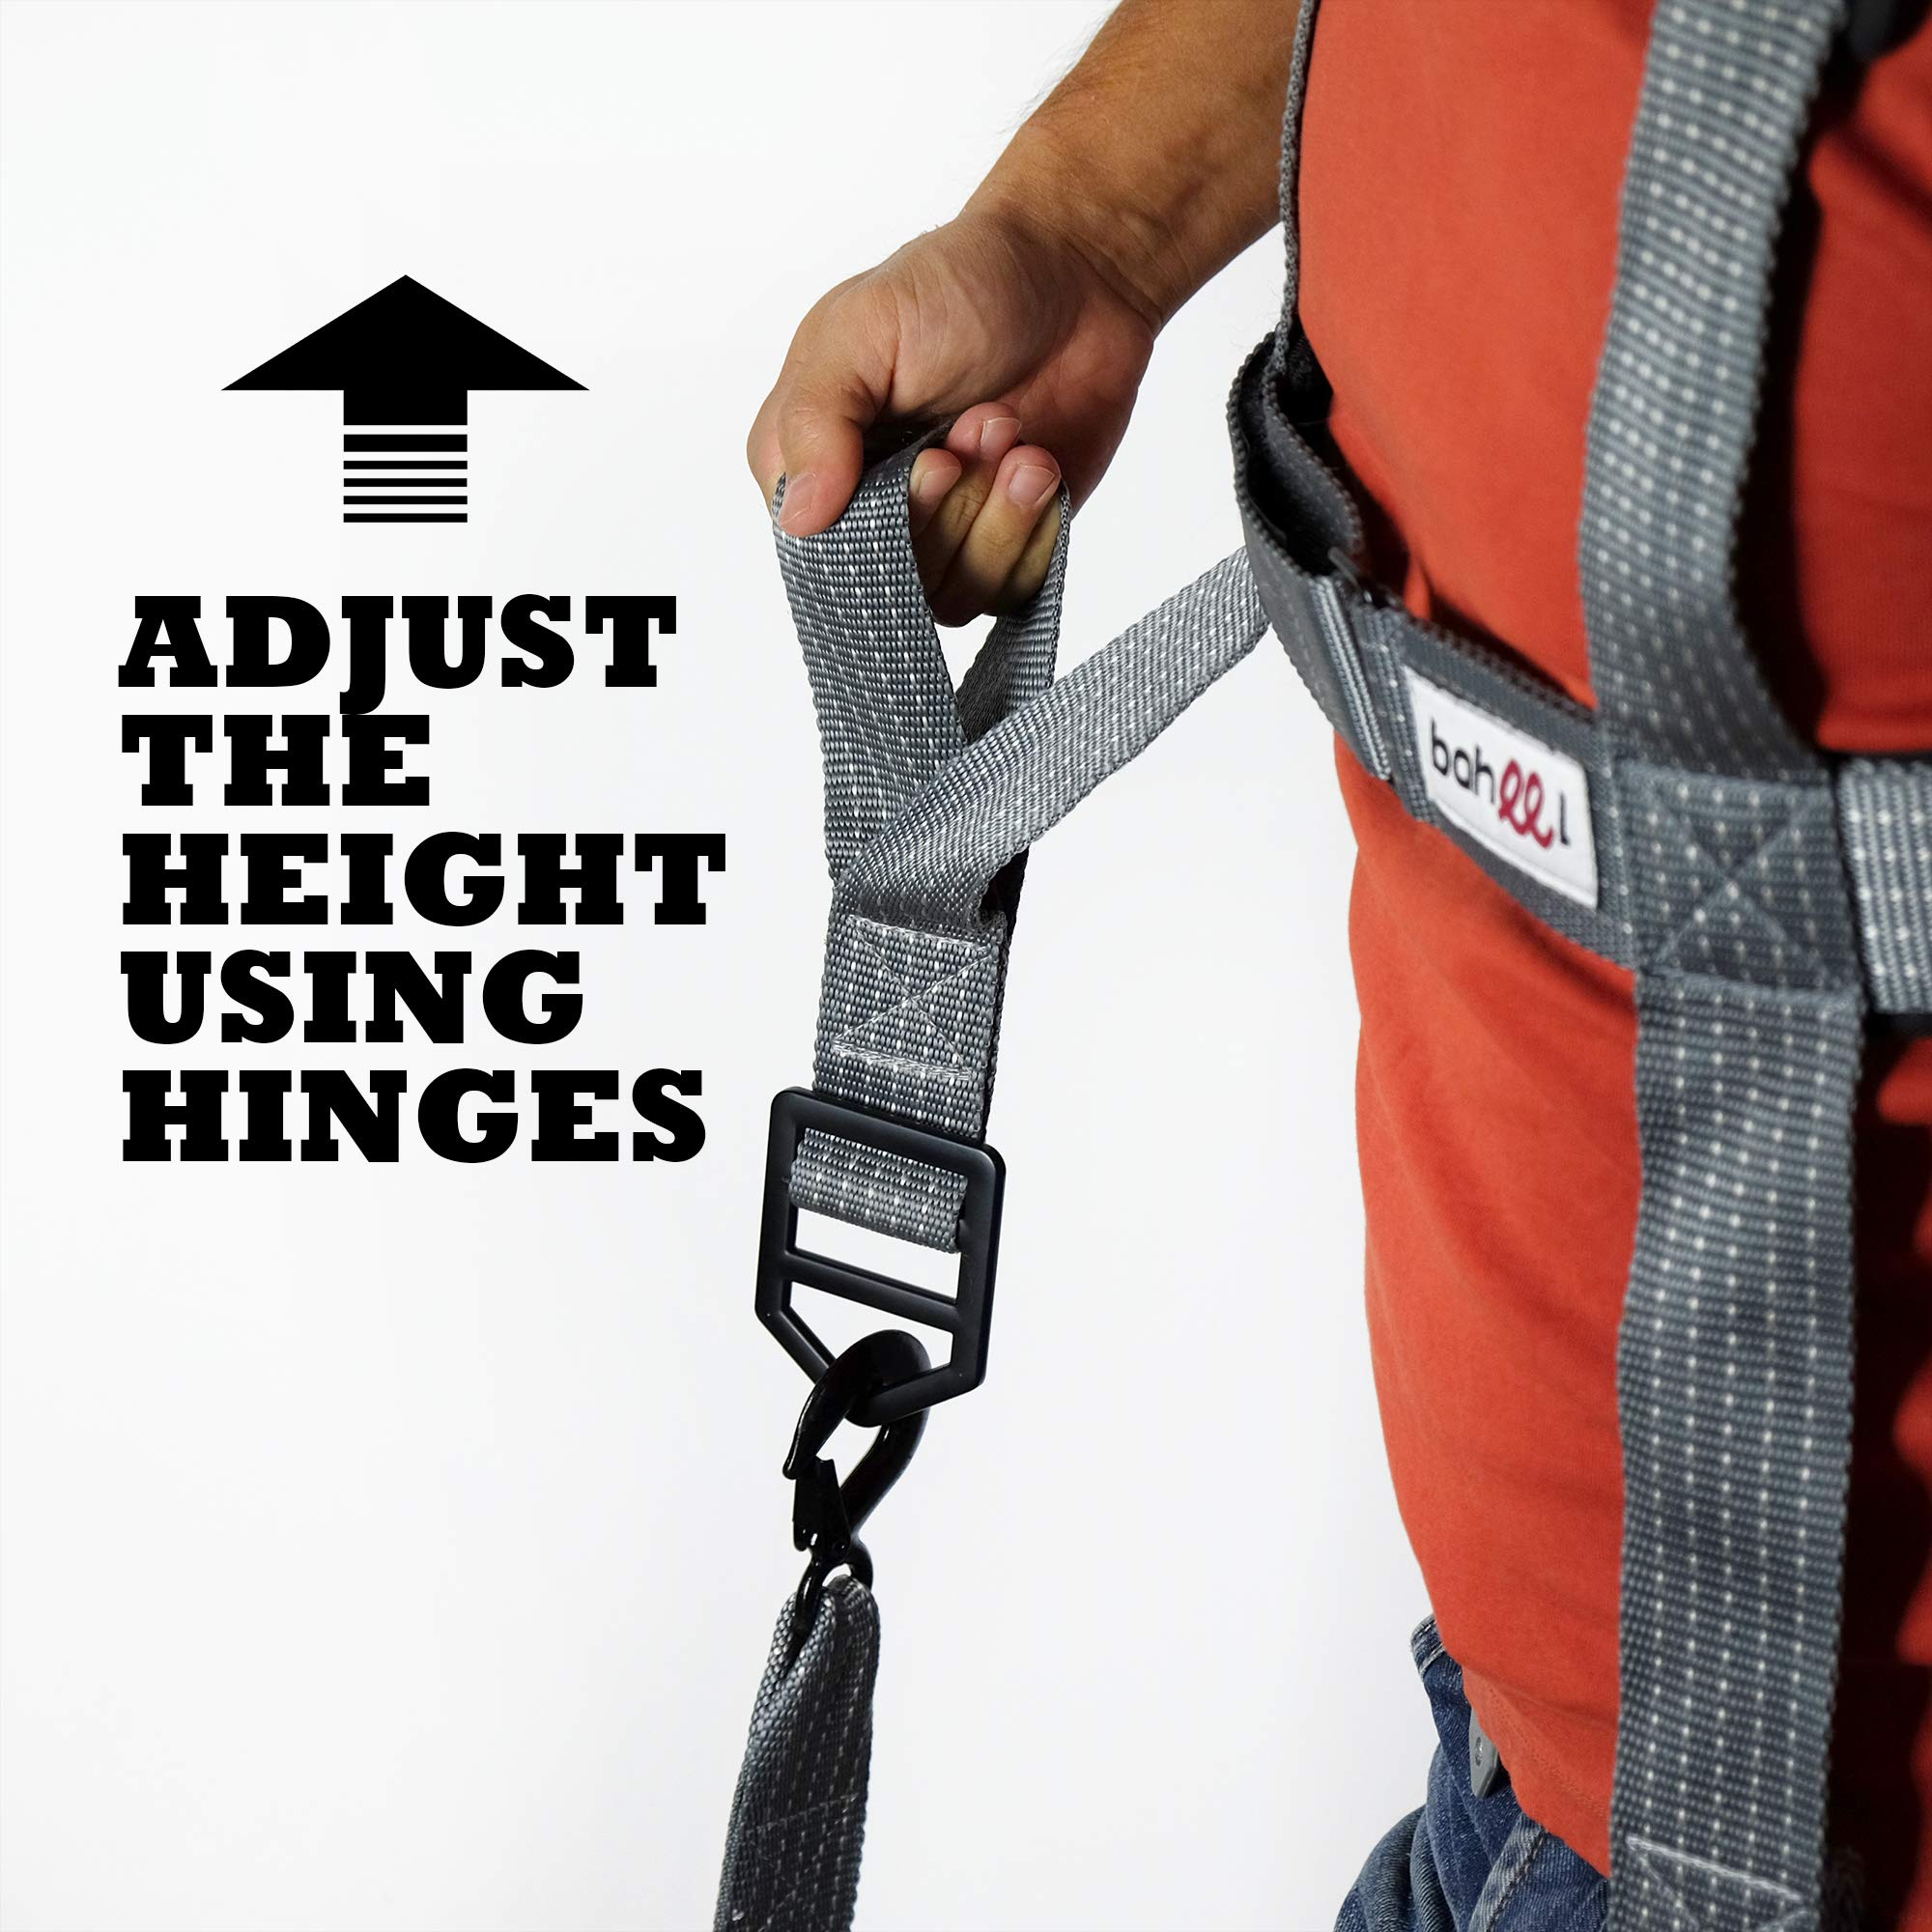 Professional Movers Tool - Shoulder Carrying Strap - Furniture Moving Tools - Lifting and Moving System - Hands Free - Safe Easy Moving